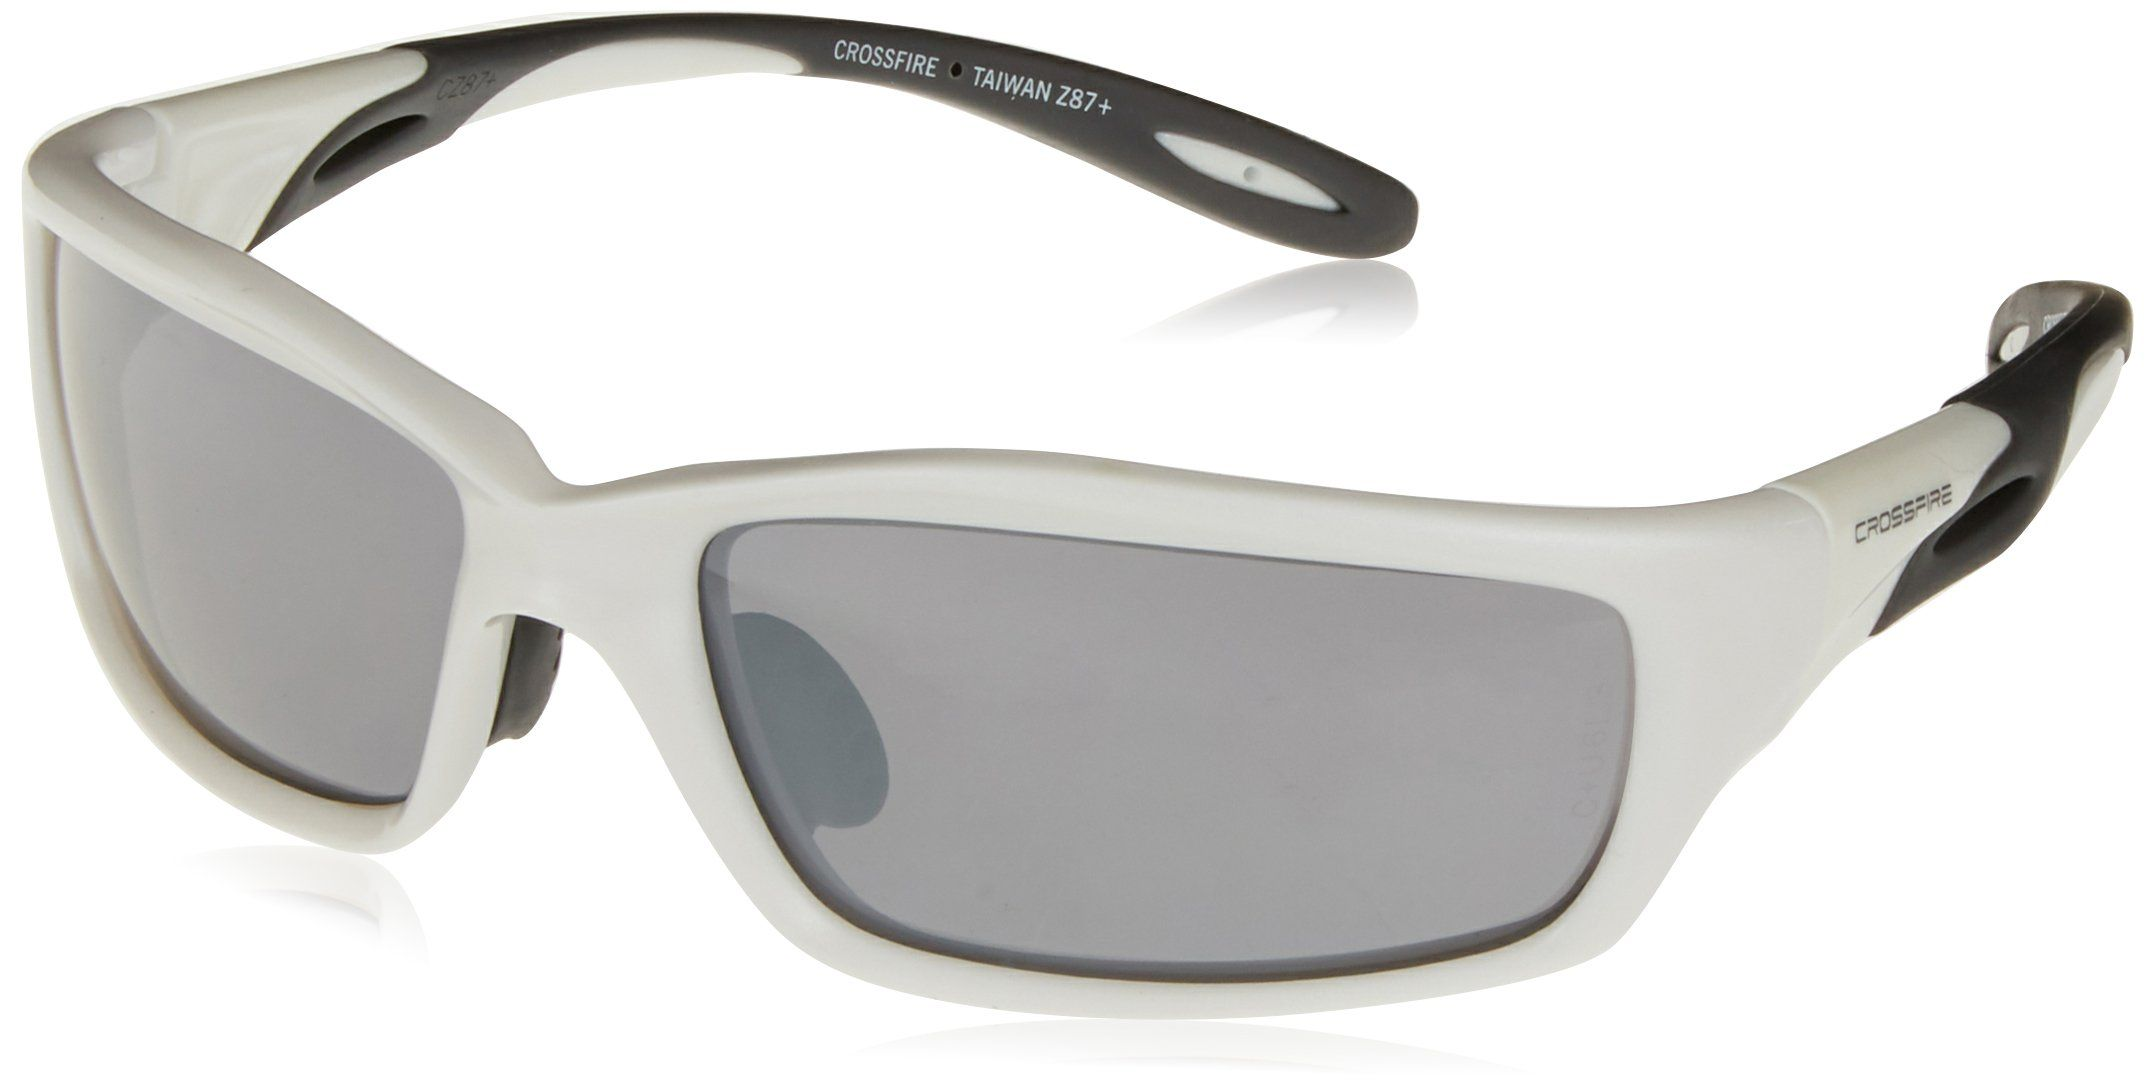 Crossfire 2243 infinity safety glasses silver mirror lens